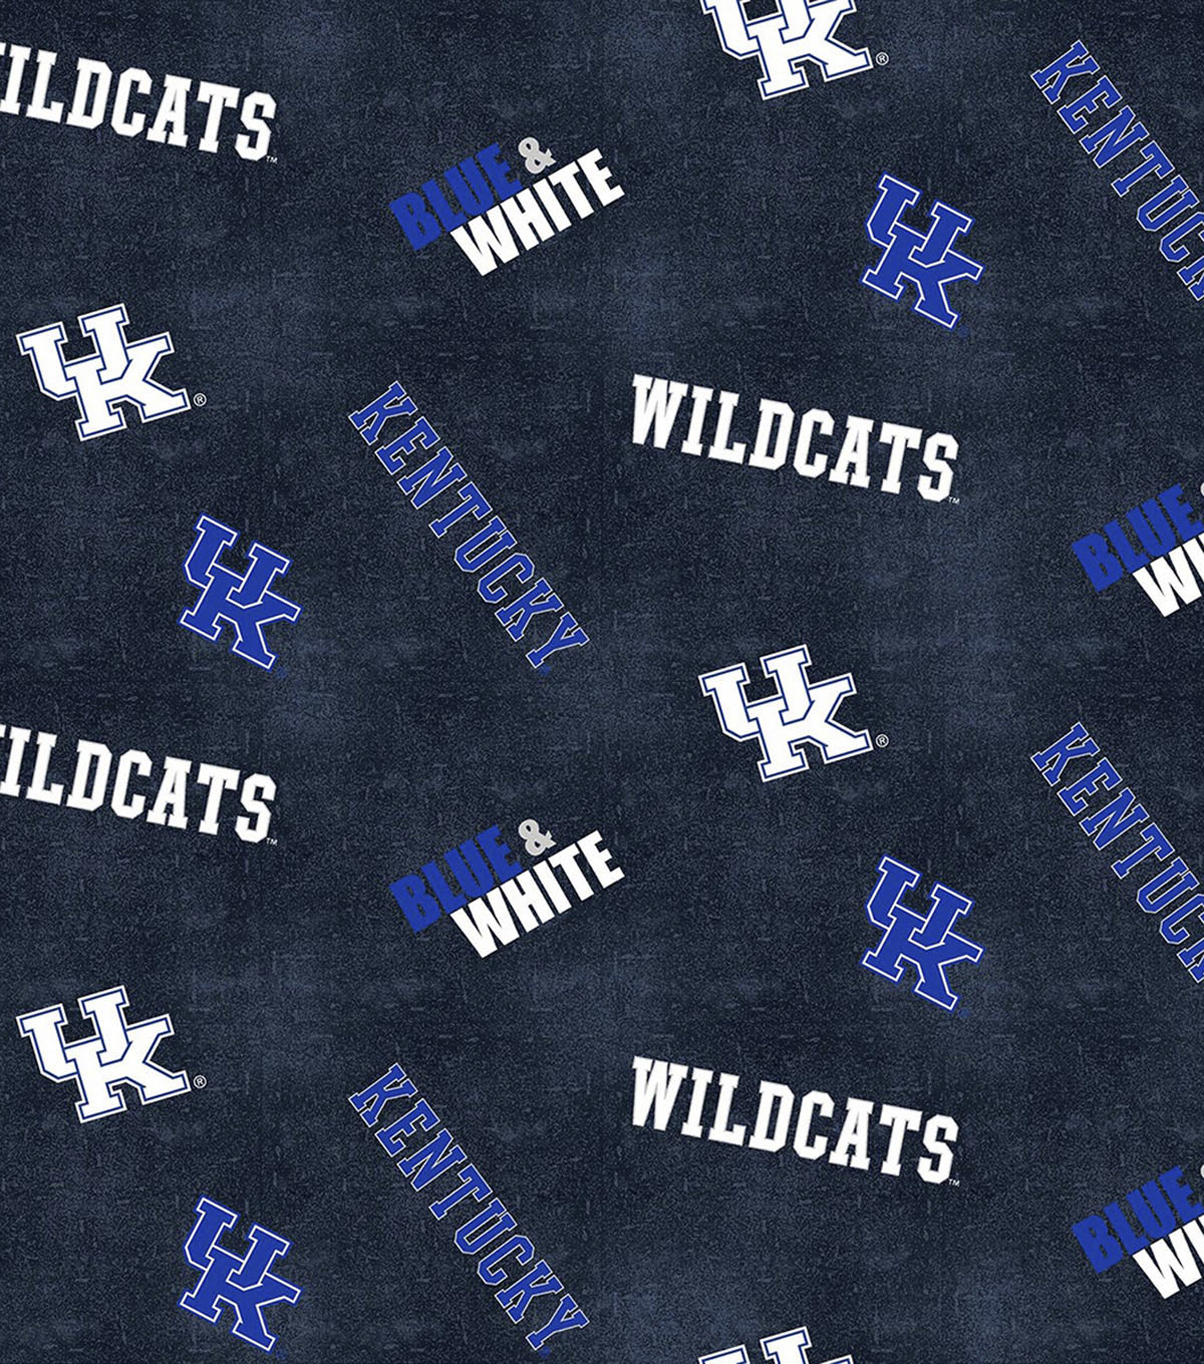 University of Kentucky Wildcats Cotton Fabric -Distressed Logo